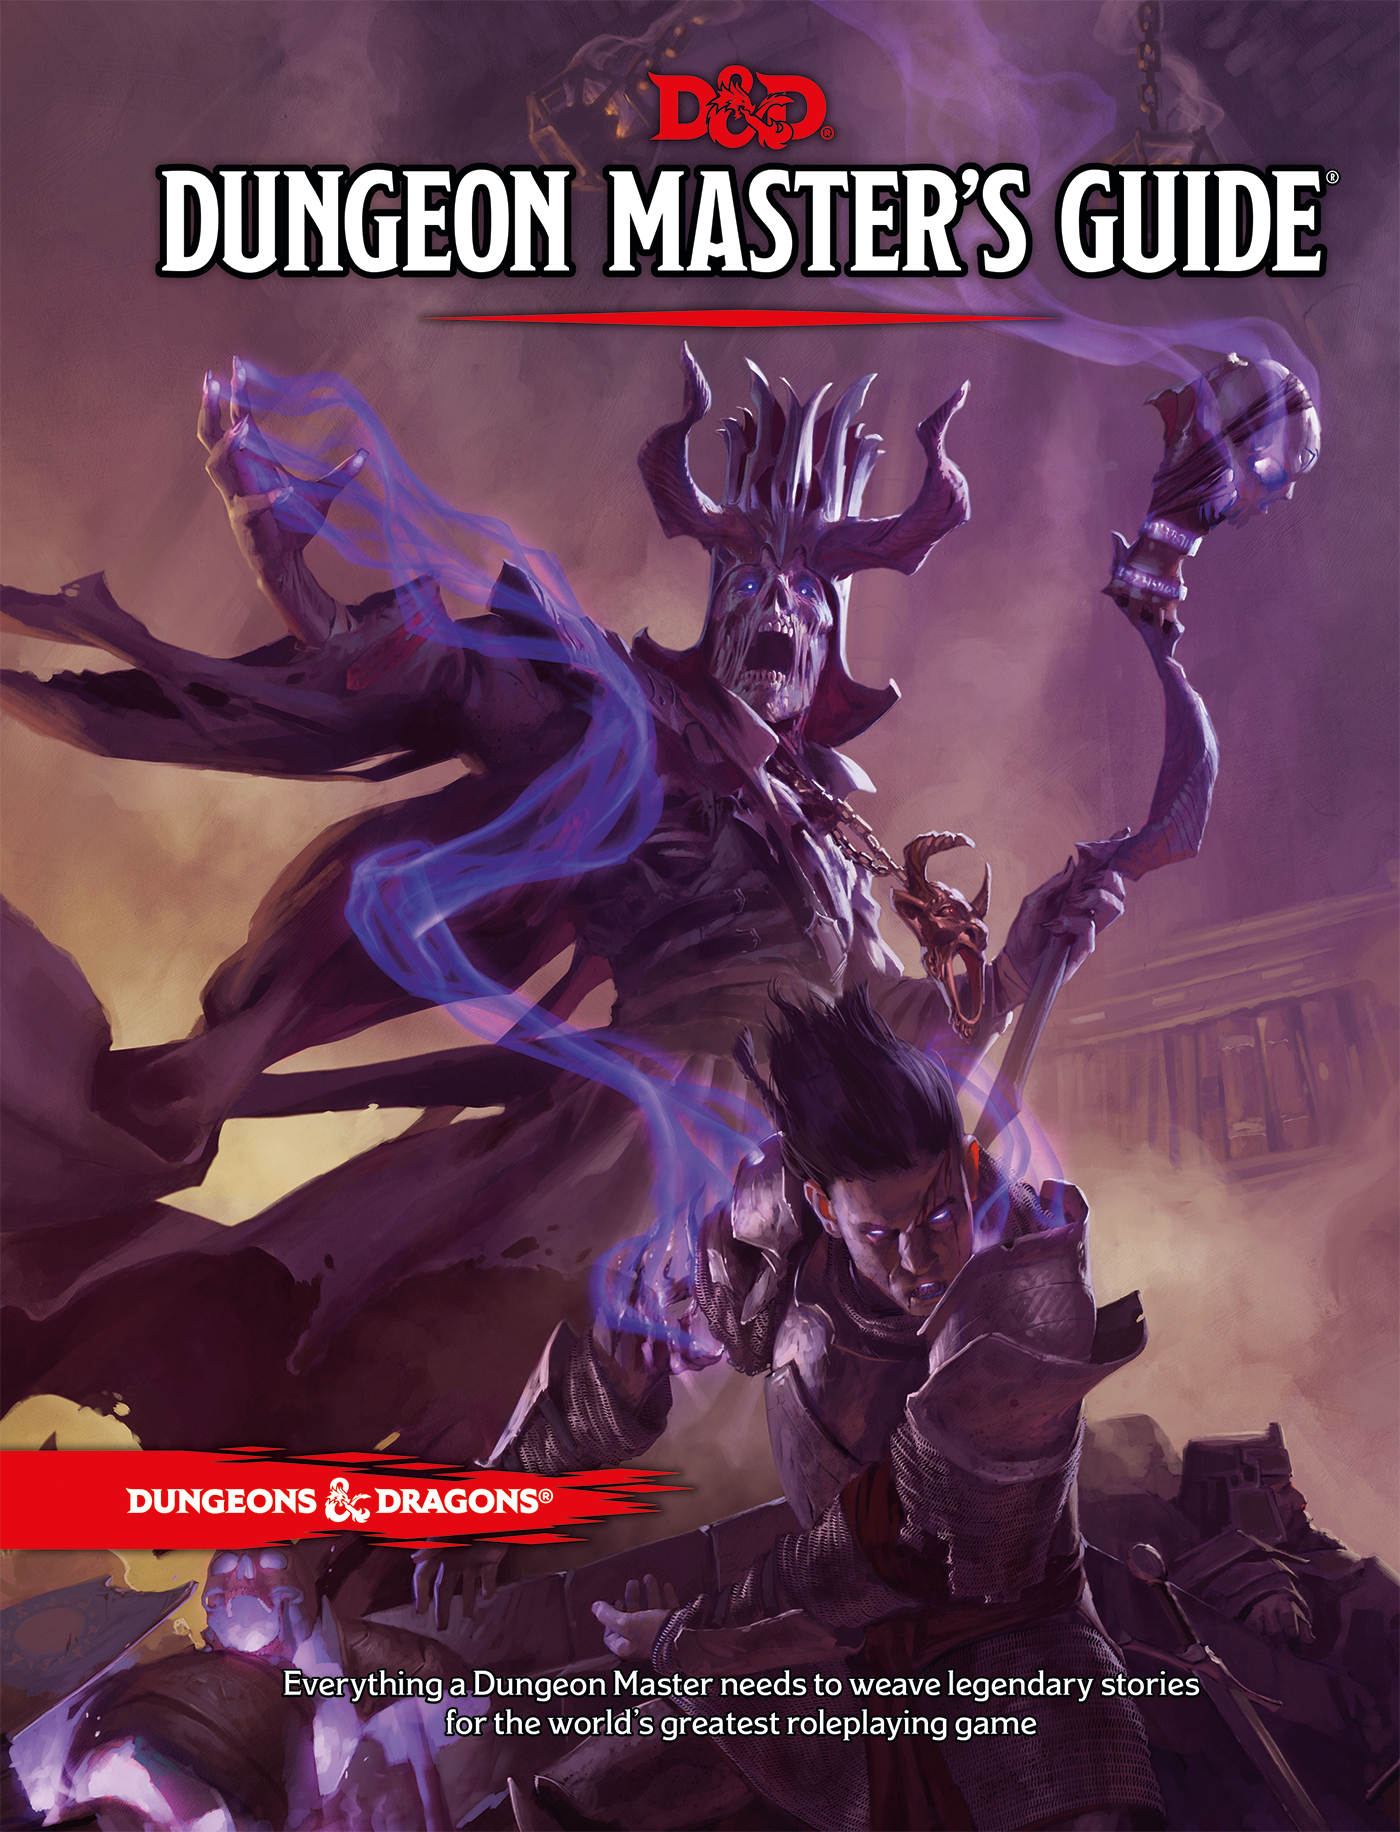 File:DungeonMaster'sGuide5e.jpg